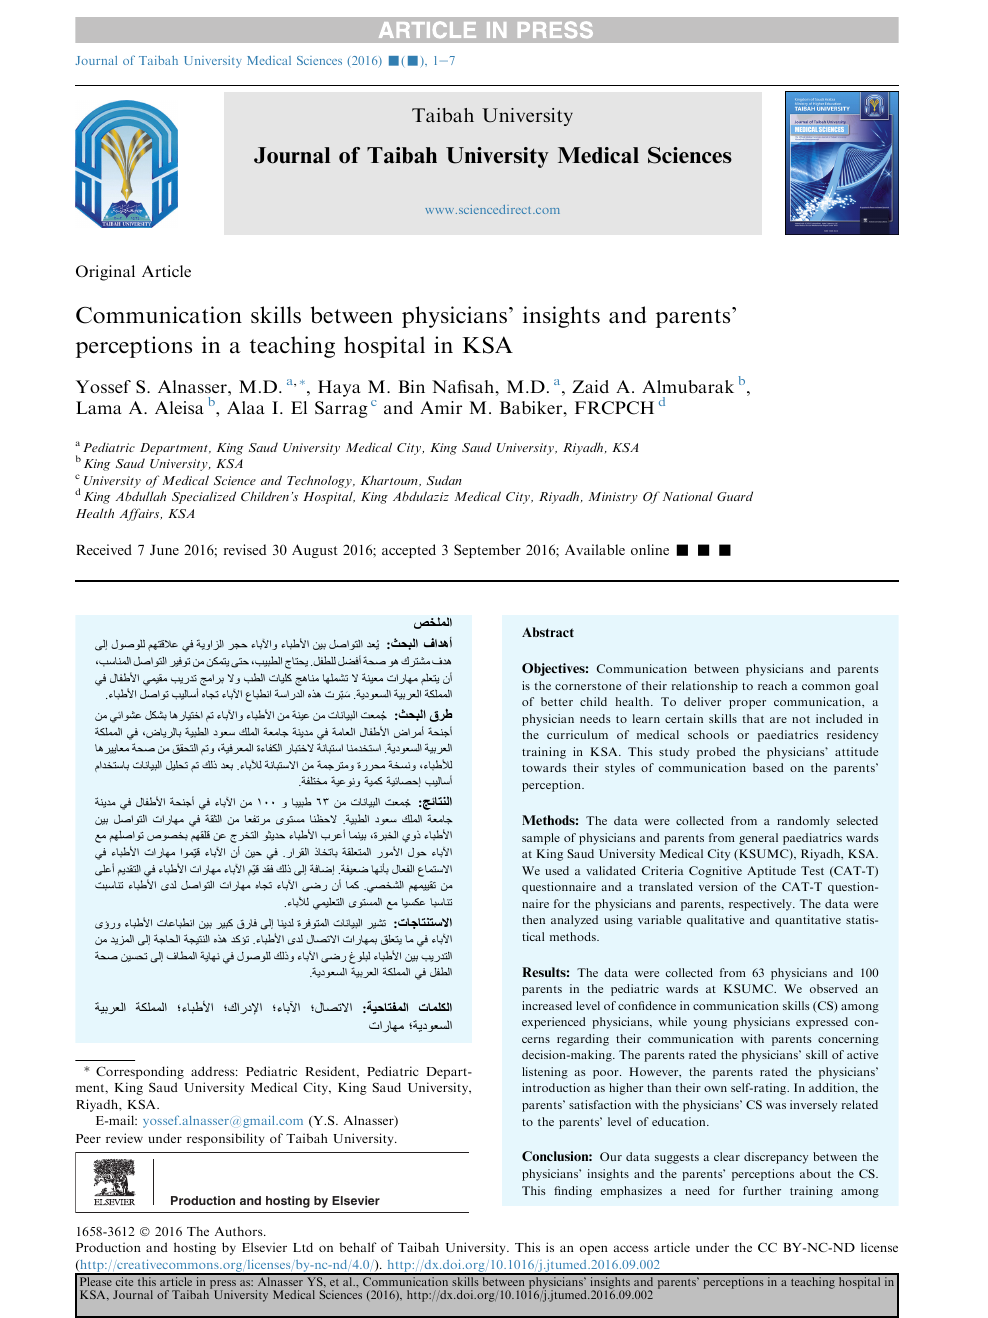 Communication skills between physicians' insights and